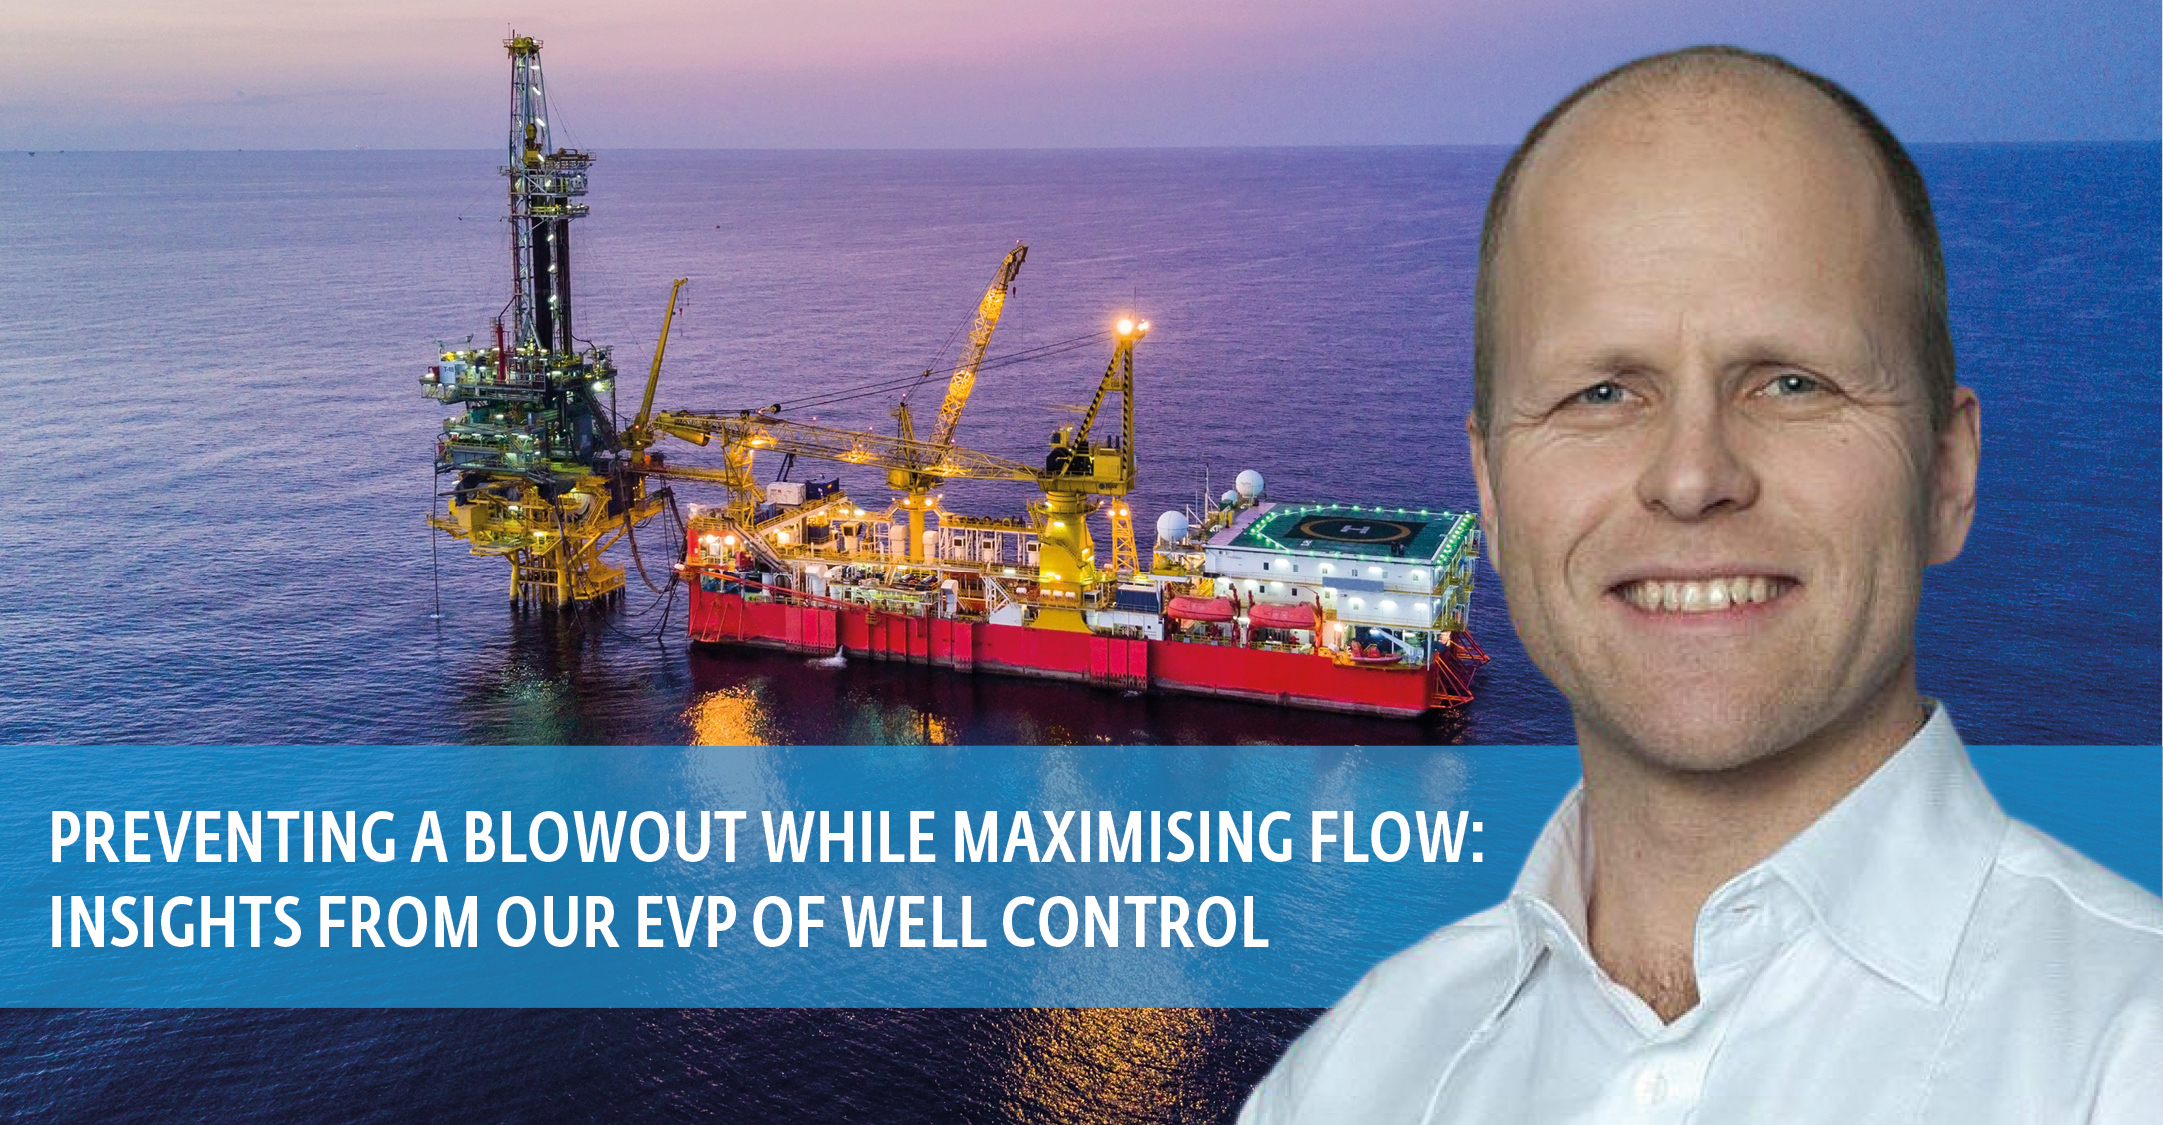 Preventing a blowout while maximising flow: insights from our EVP of Well Control, Morten Haug Emilsen